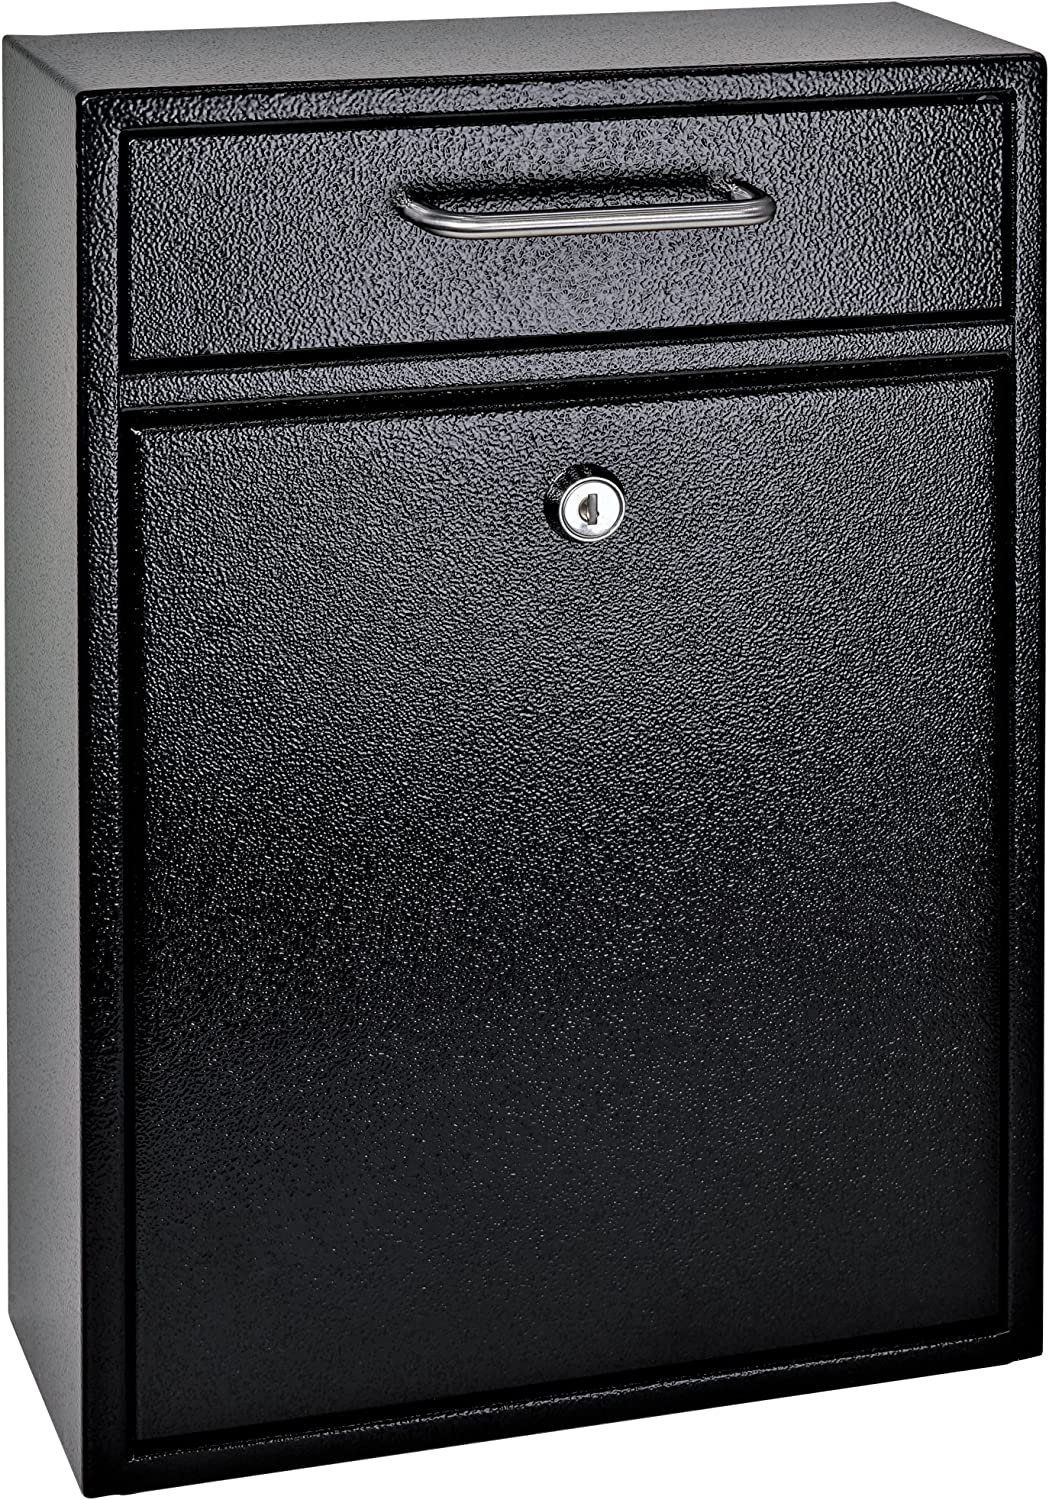 Mail Boss 7412 High Security A surprise price is realized Steel Max 56% OFF Locking Mounted Wall Mailbox-